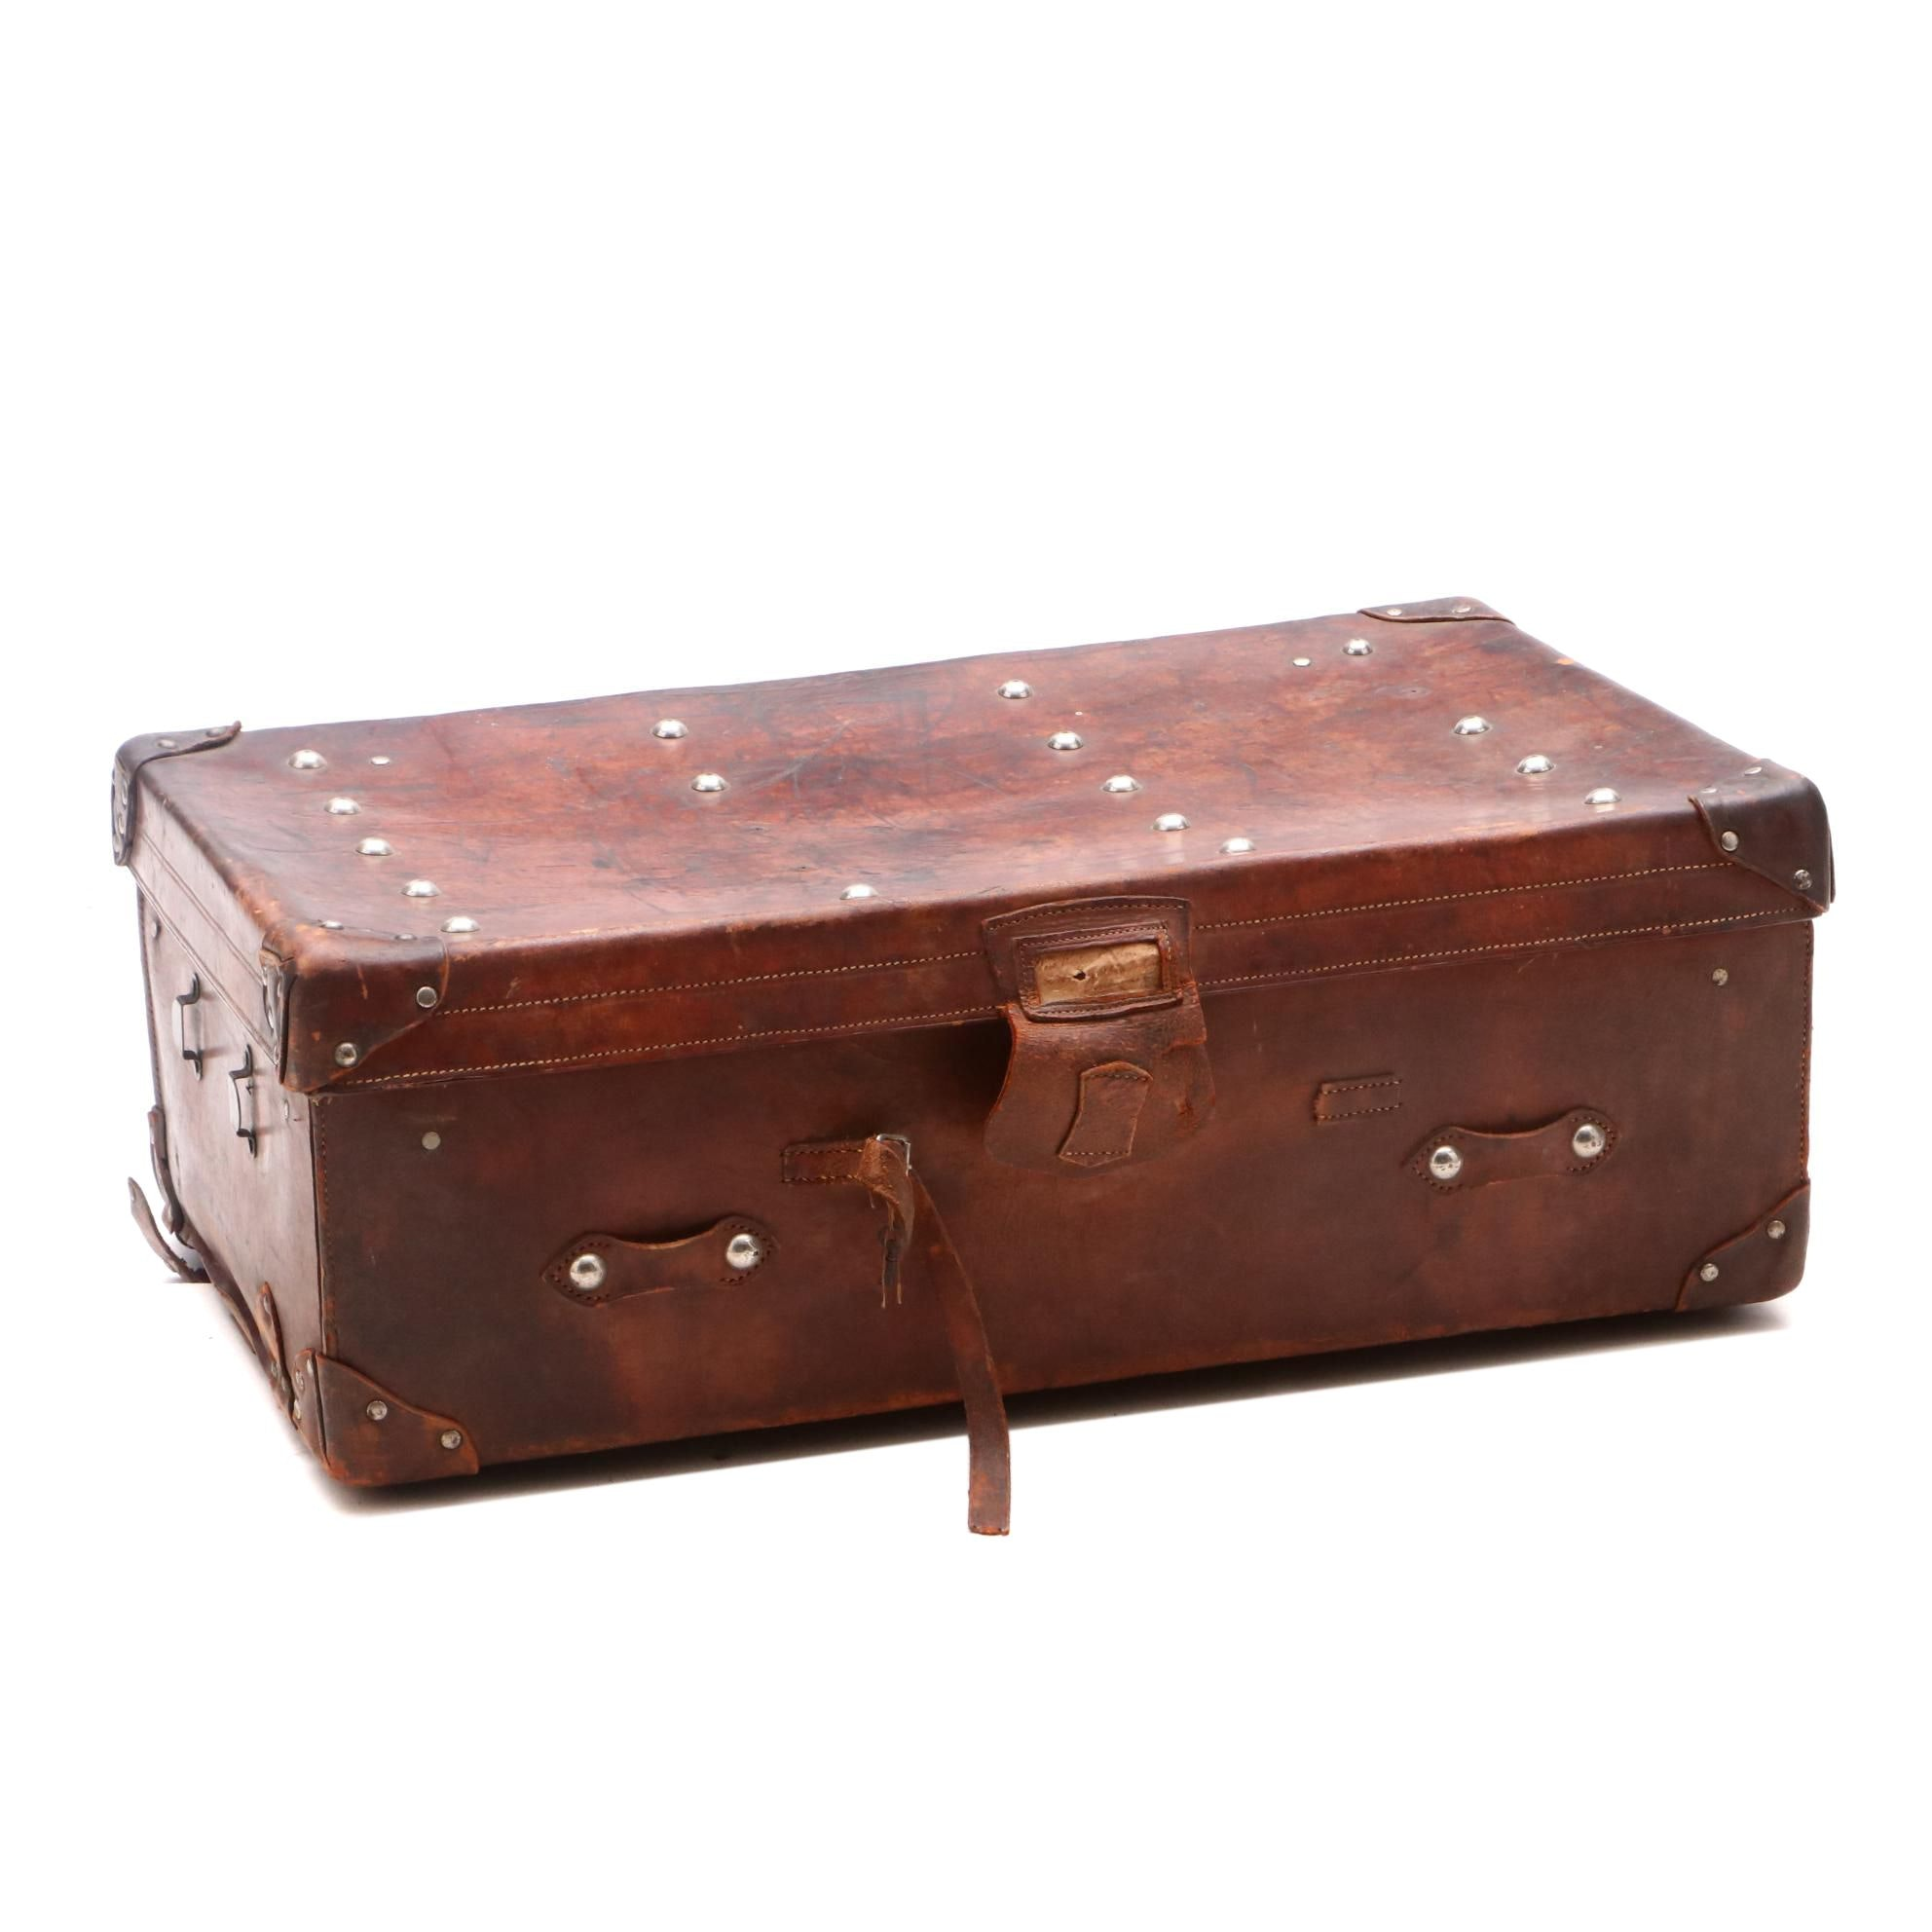 Leather Traveler's Trunk, Late 19th/Early 20th Century